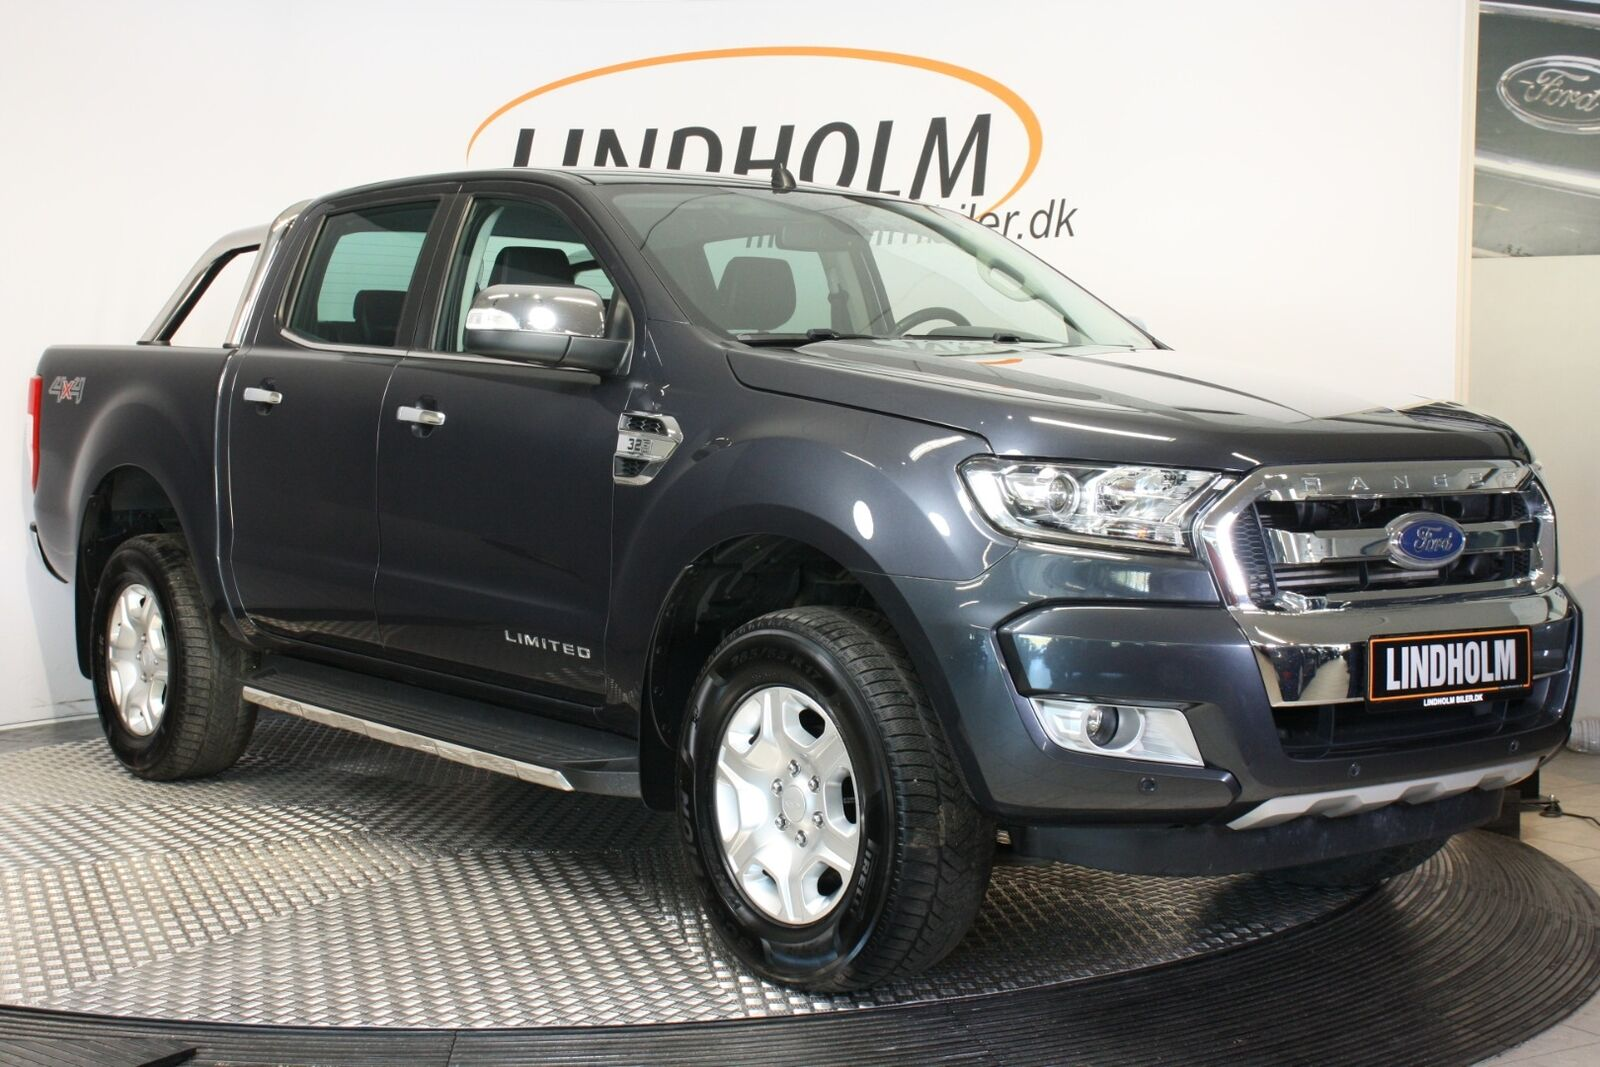 Ford Ranger TDCi Db.Cab Limited 4x4